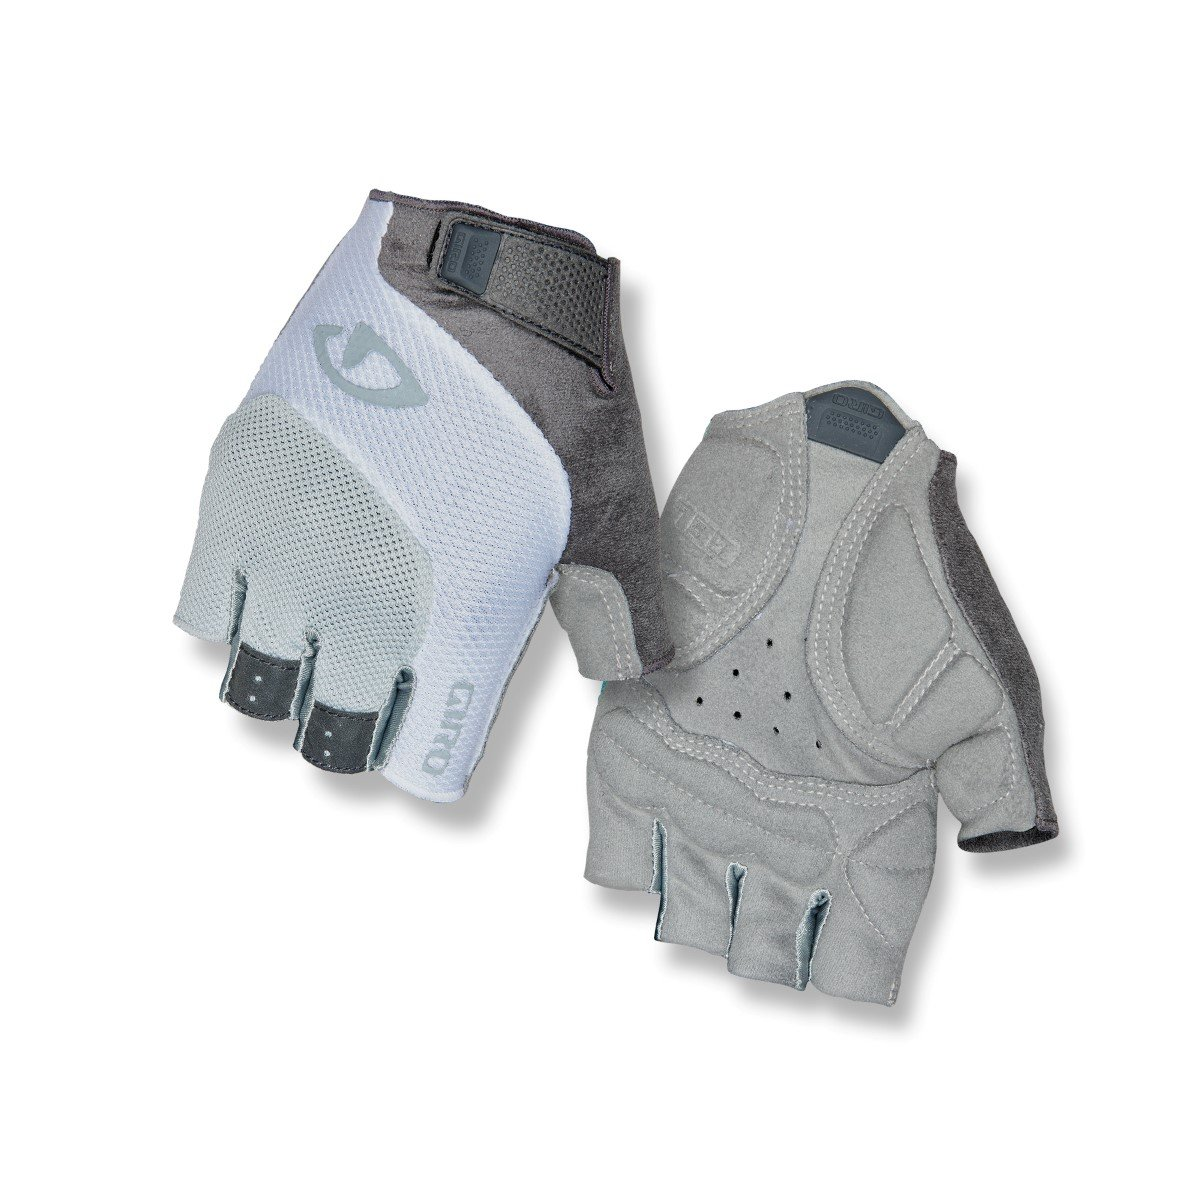 Giro Tessa Gel Glove - Women's Grey/White, S